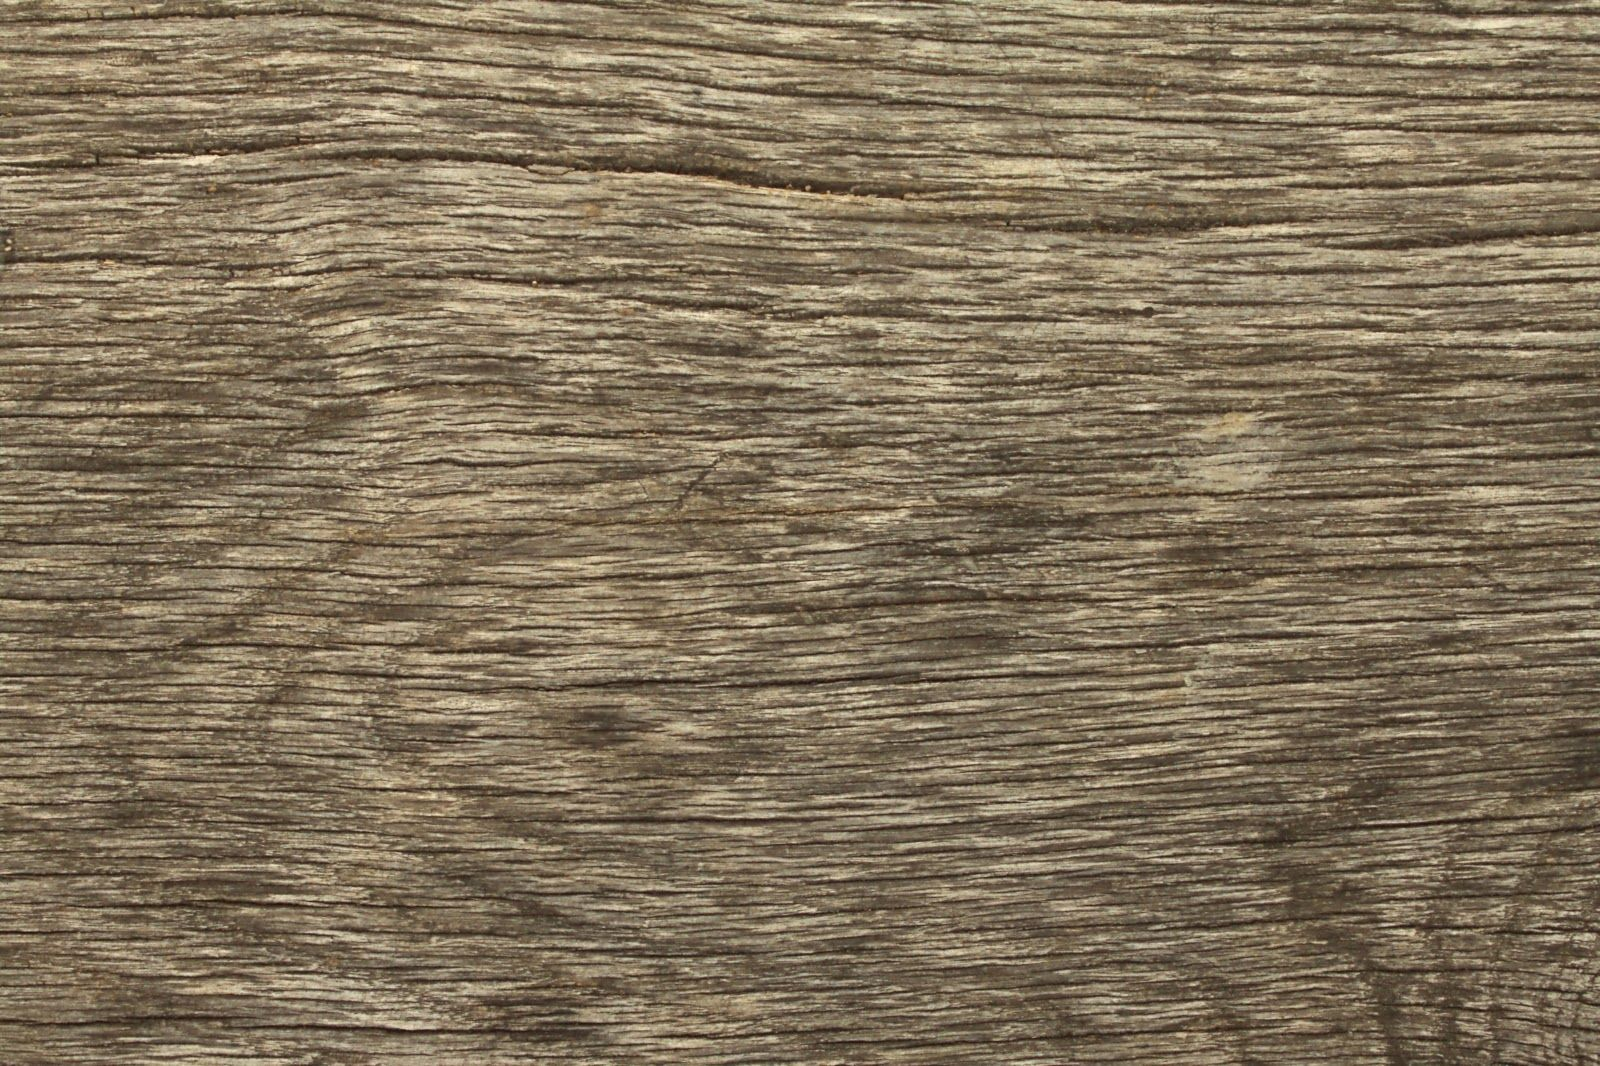 Wood Dry Cracked Bench Tree Bark Texture Ver 3 In 2019